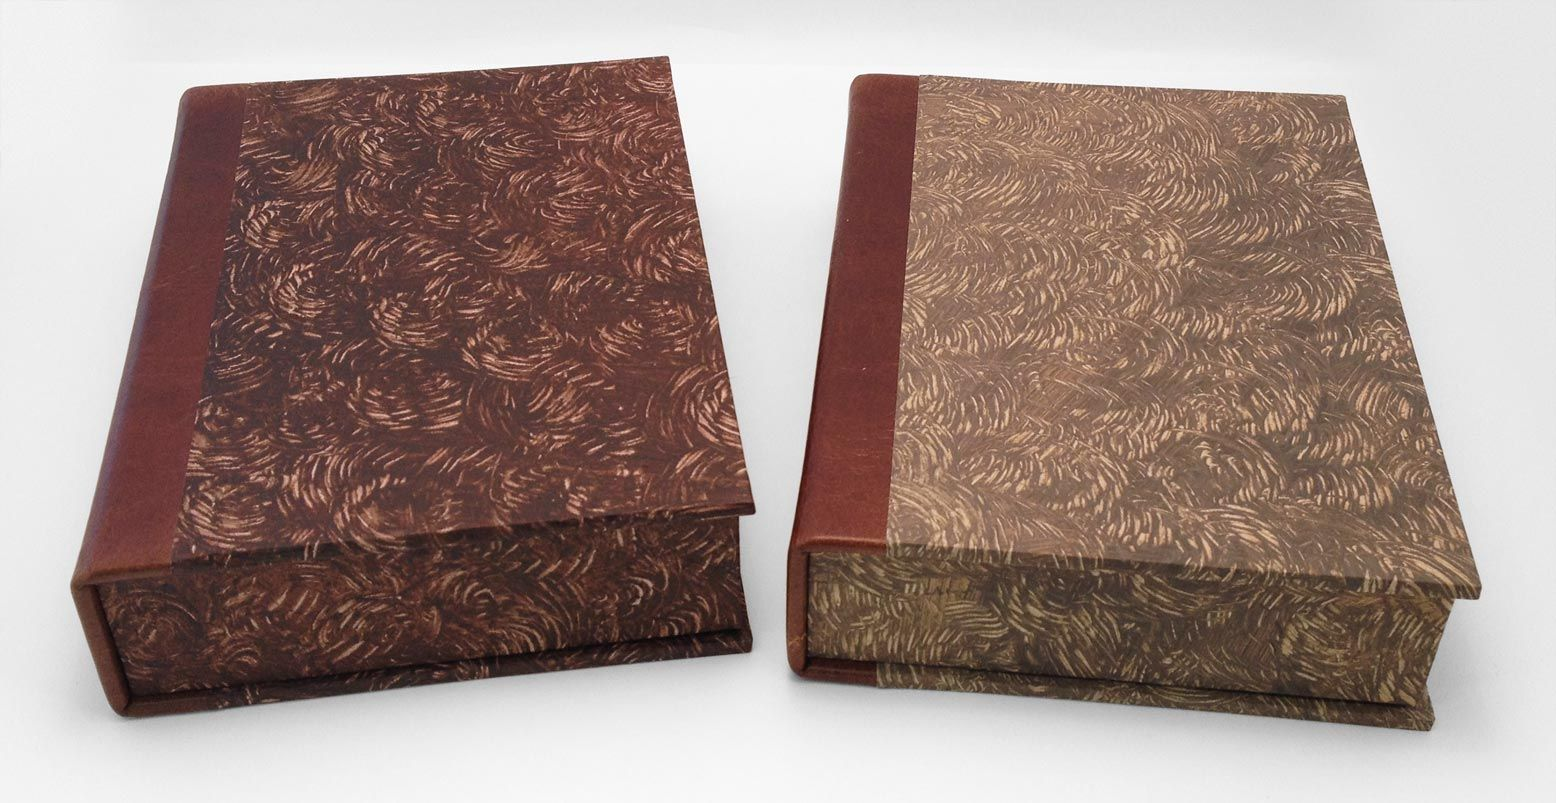 Leather clamshell boxes covered in handmade paste paper. Boxes are made to house handcrafted wooden chess pieces.